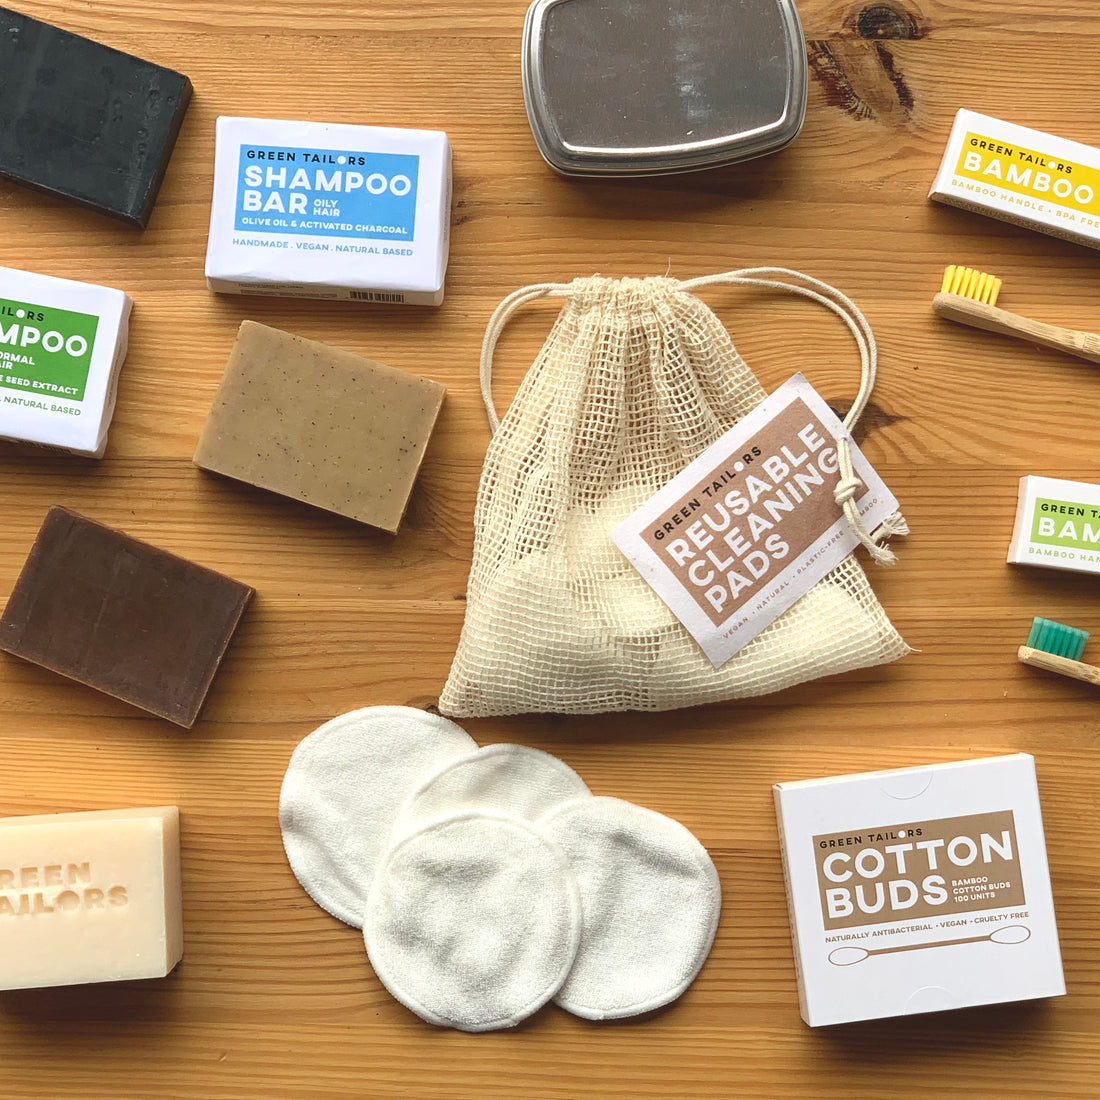 Great zero waste product ideas